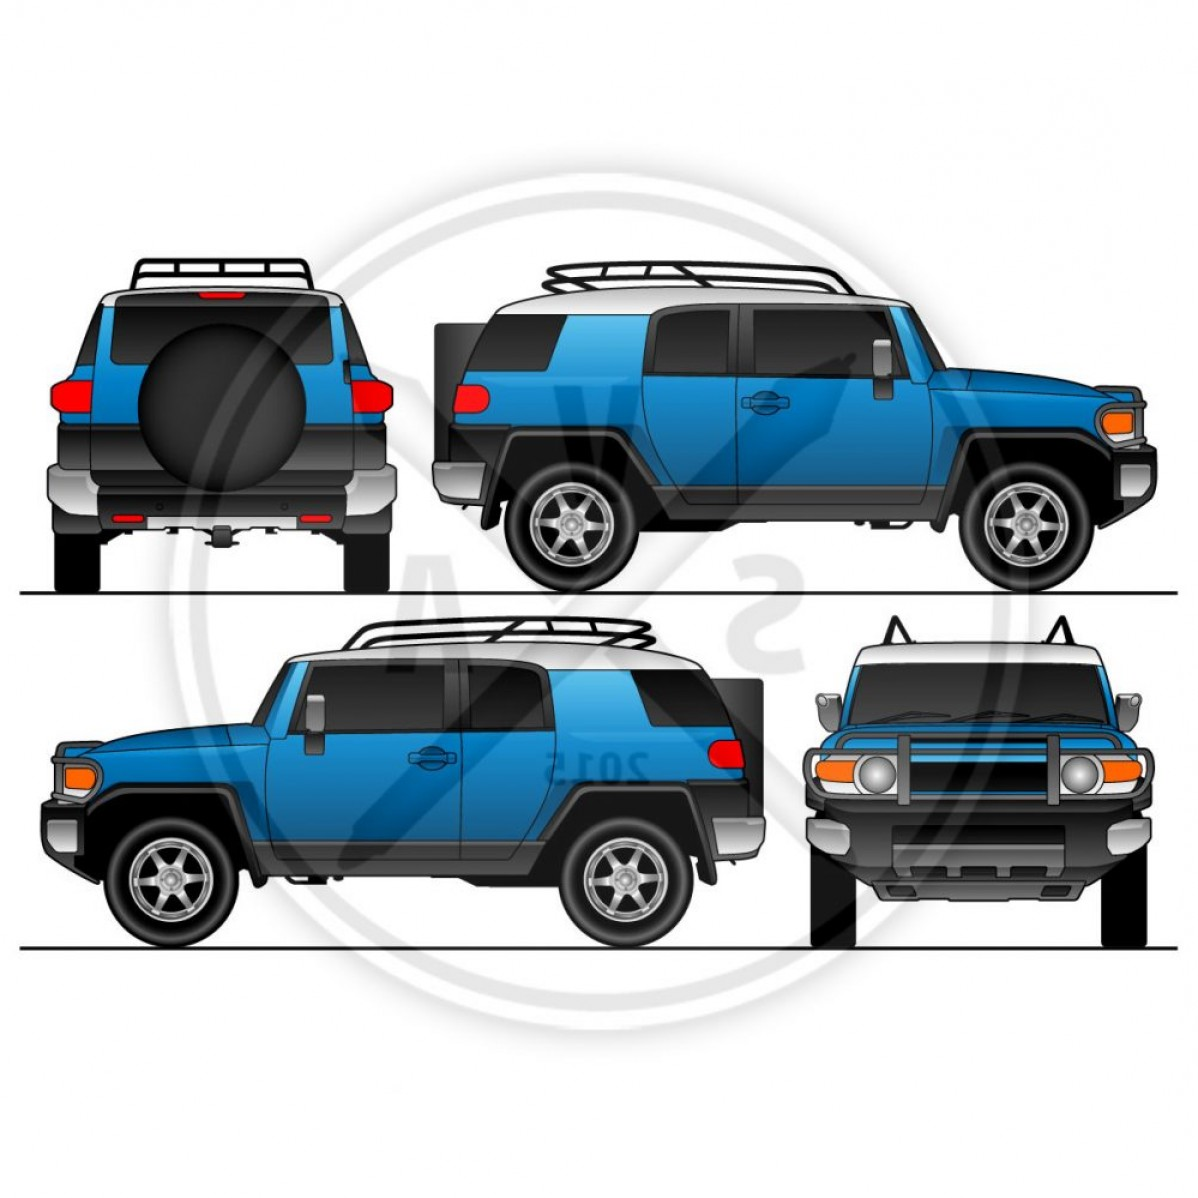 1198x1198 Vehicle Outline Fj Cruiser Suv Vector Art Arenawp